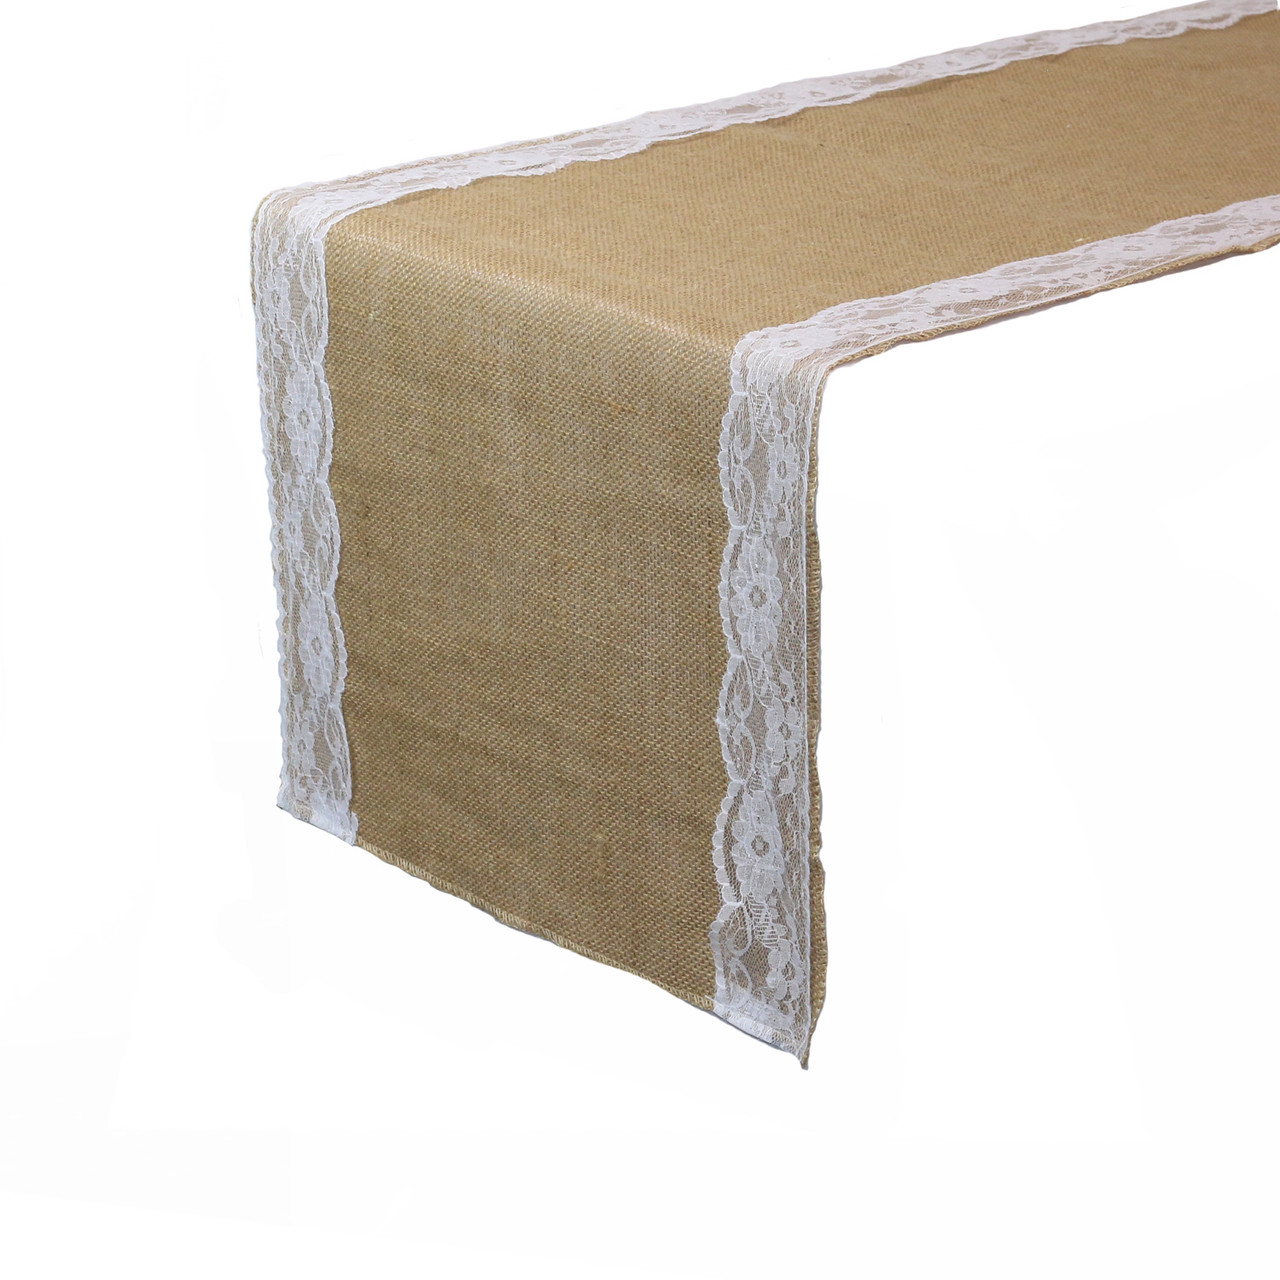 Super 14 X 108 Inch Jute Burlap Table Runner With White Lace Edges Pabps2019 Chair Design Images Pabps2019Com